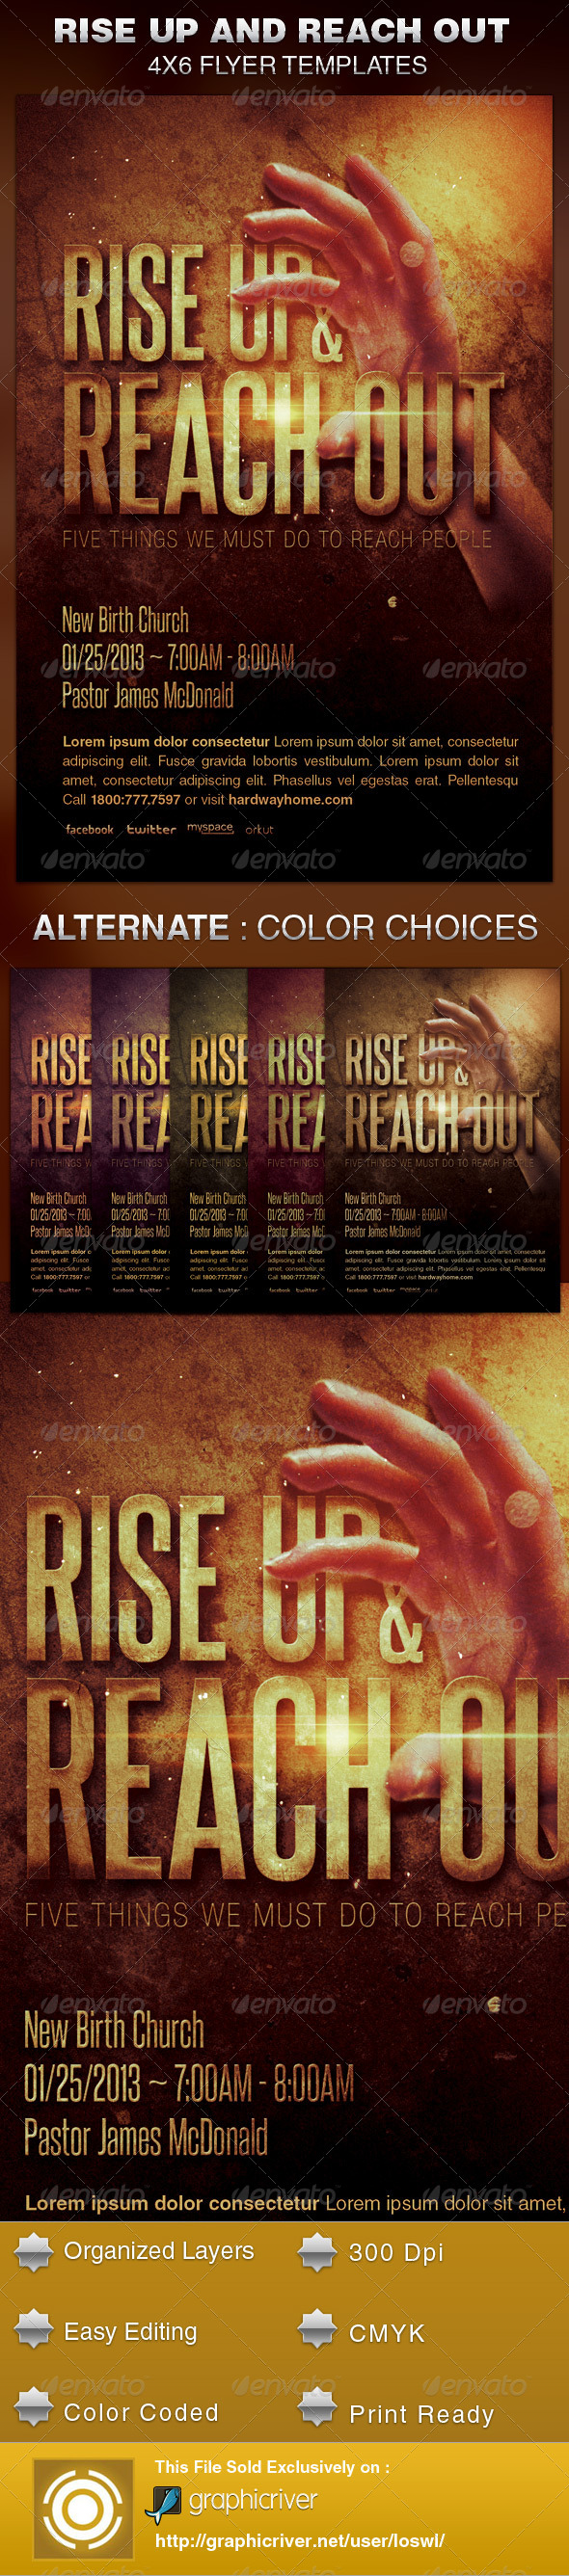 GraphicRiver Rise Up and Reach Out Church Flyer Template 6040583